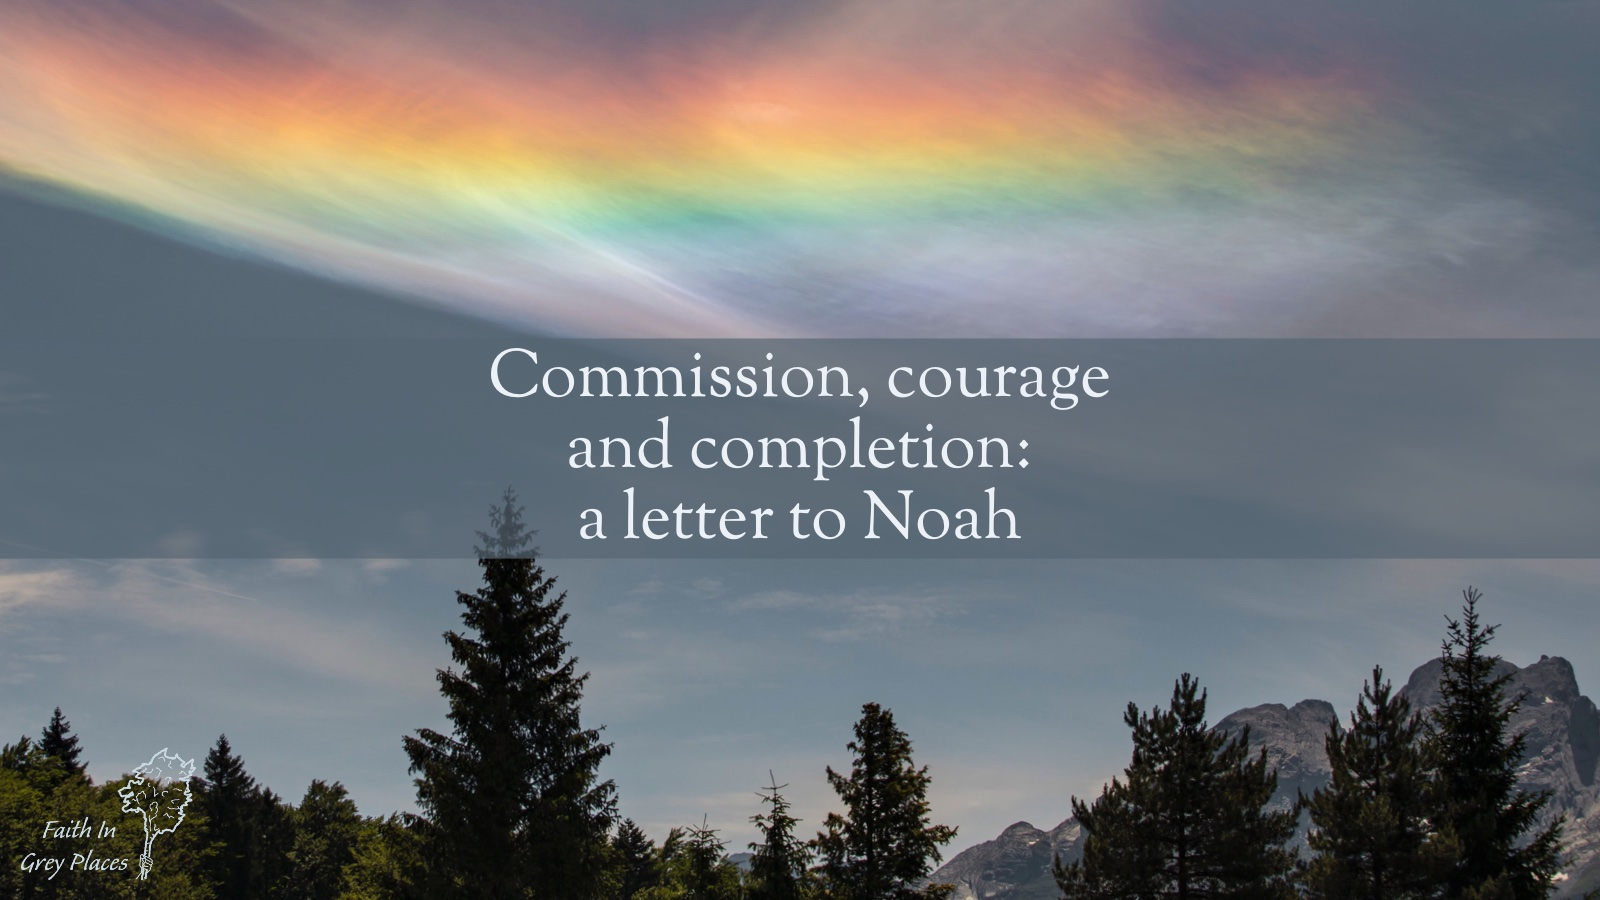 White cloud across a dusty blue sky, over trees and mountains. The cloud has been lit up by the sun and a rainbow shines through it. Text: Commission, courage and completion: a letter to Noah. Faith in Grey Places